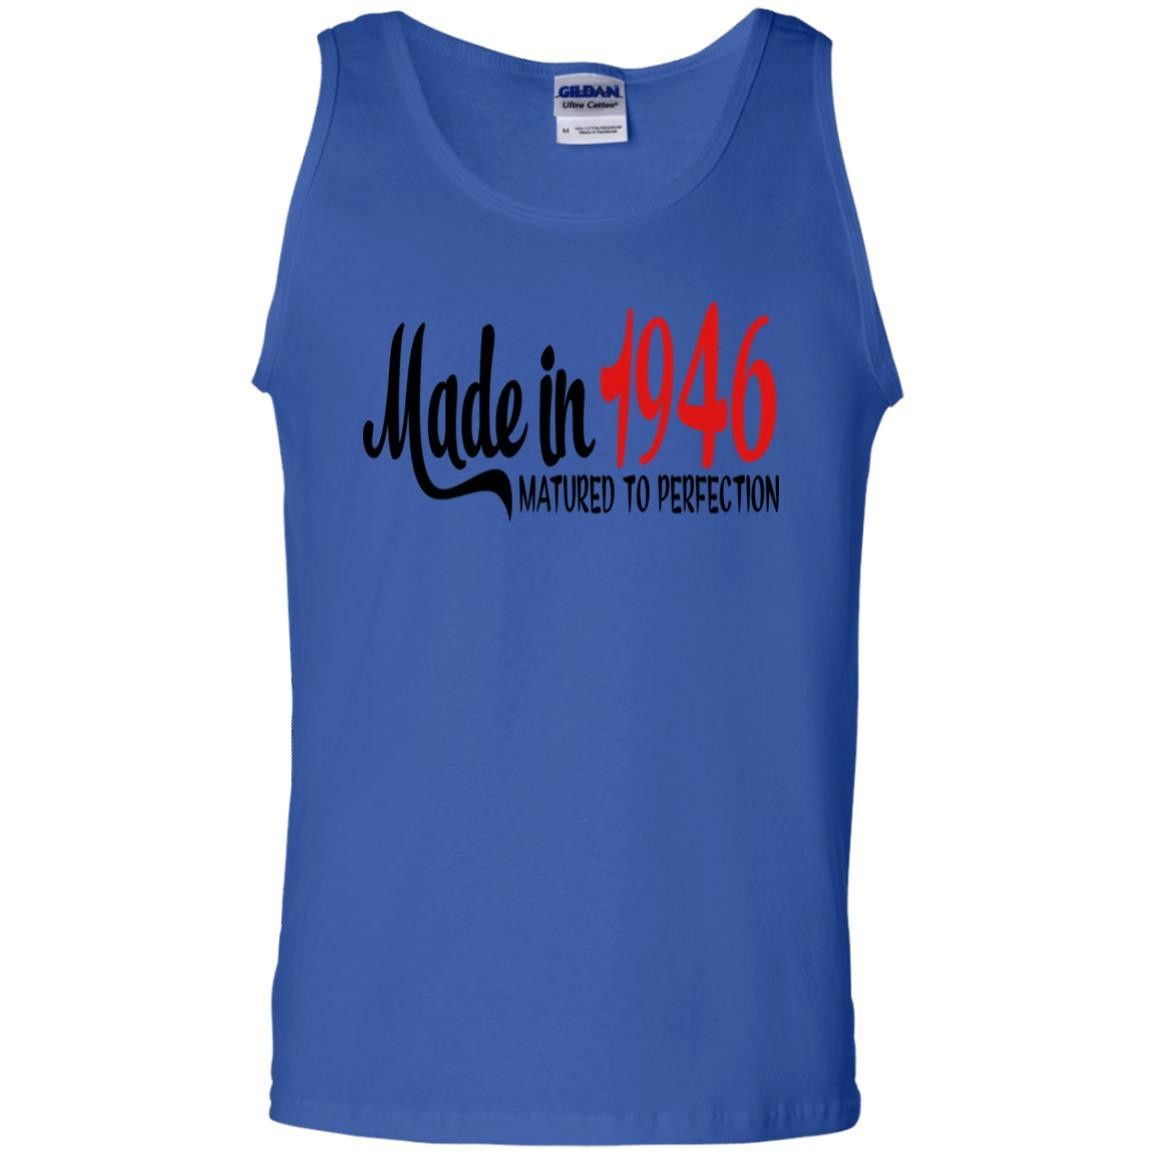 1946 G220 Gildan 100% Cotton Tank Top. Tank Tops